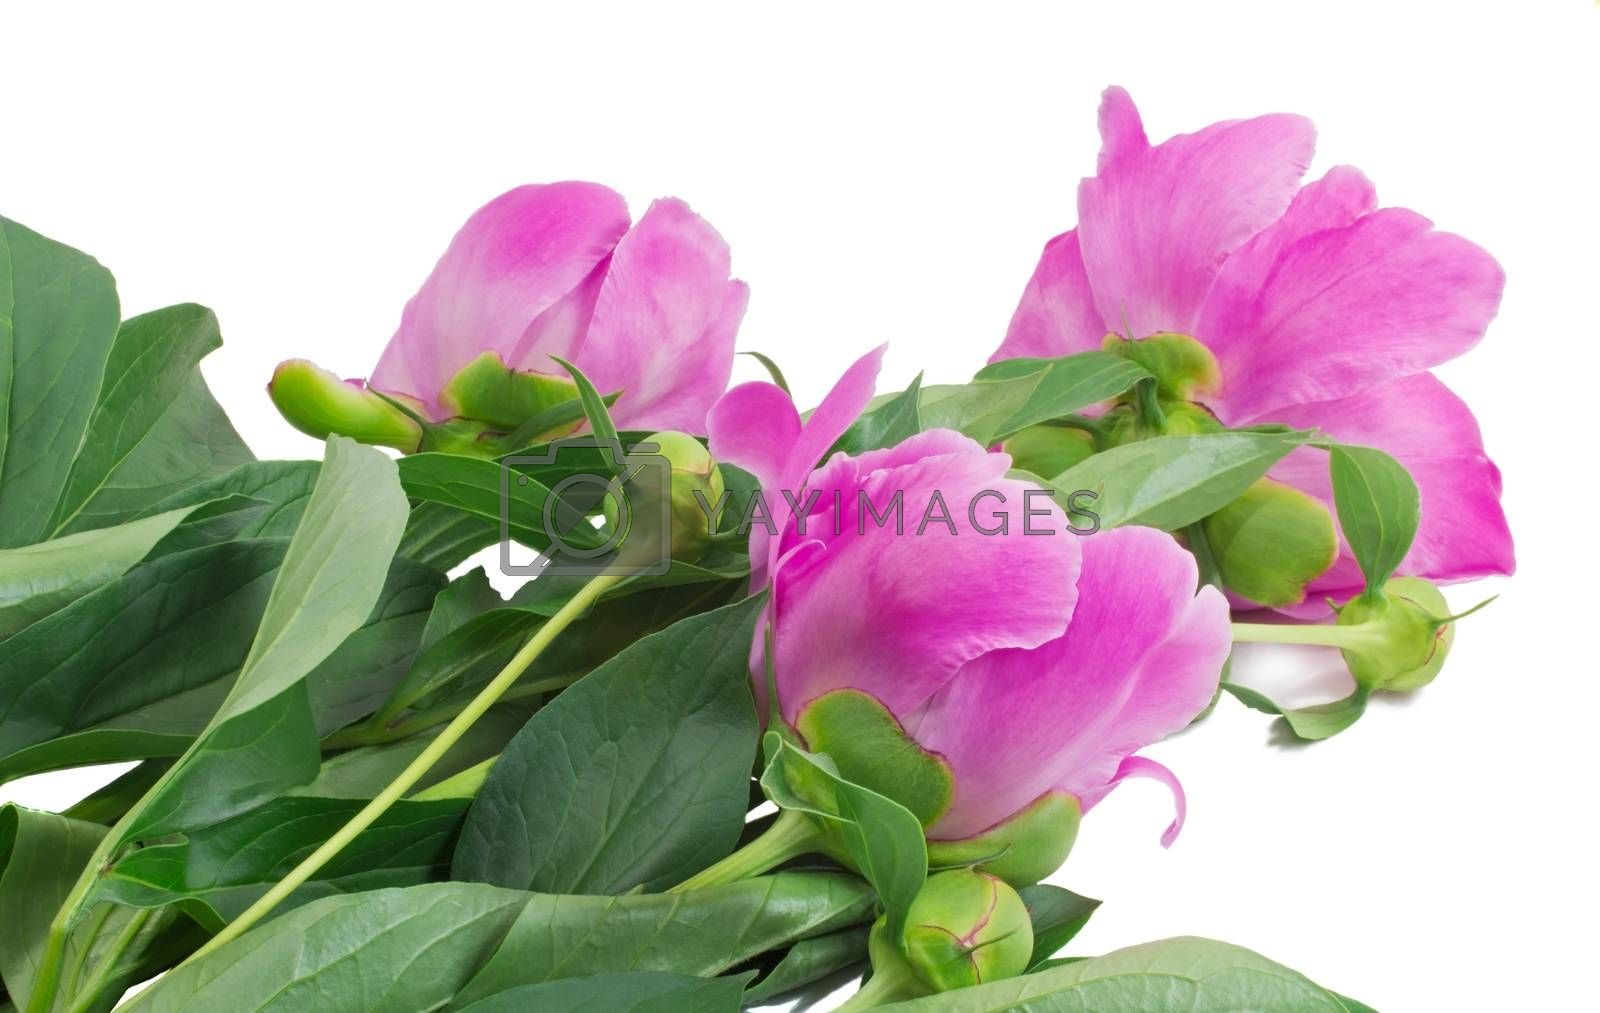 Bright - pink peony flowers with buds and green leaves. Presented on a white background.